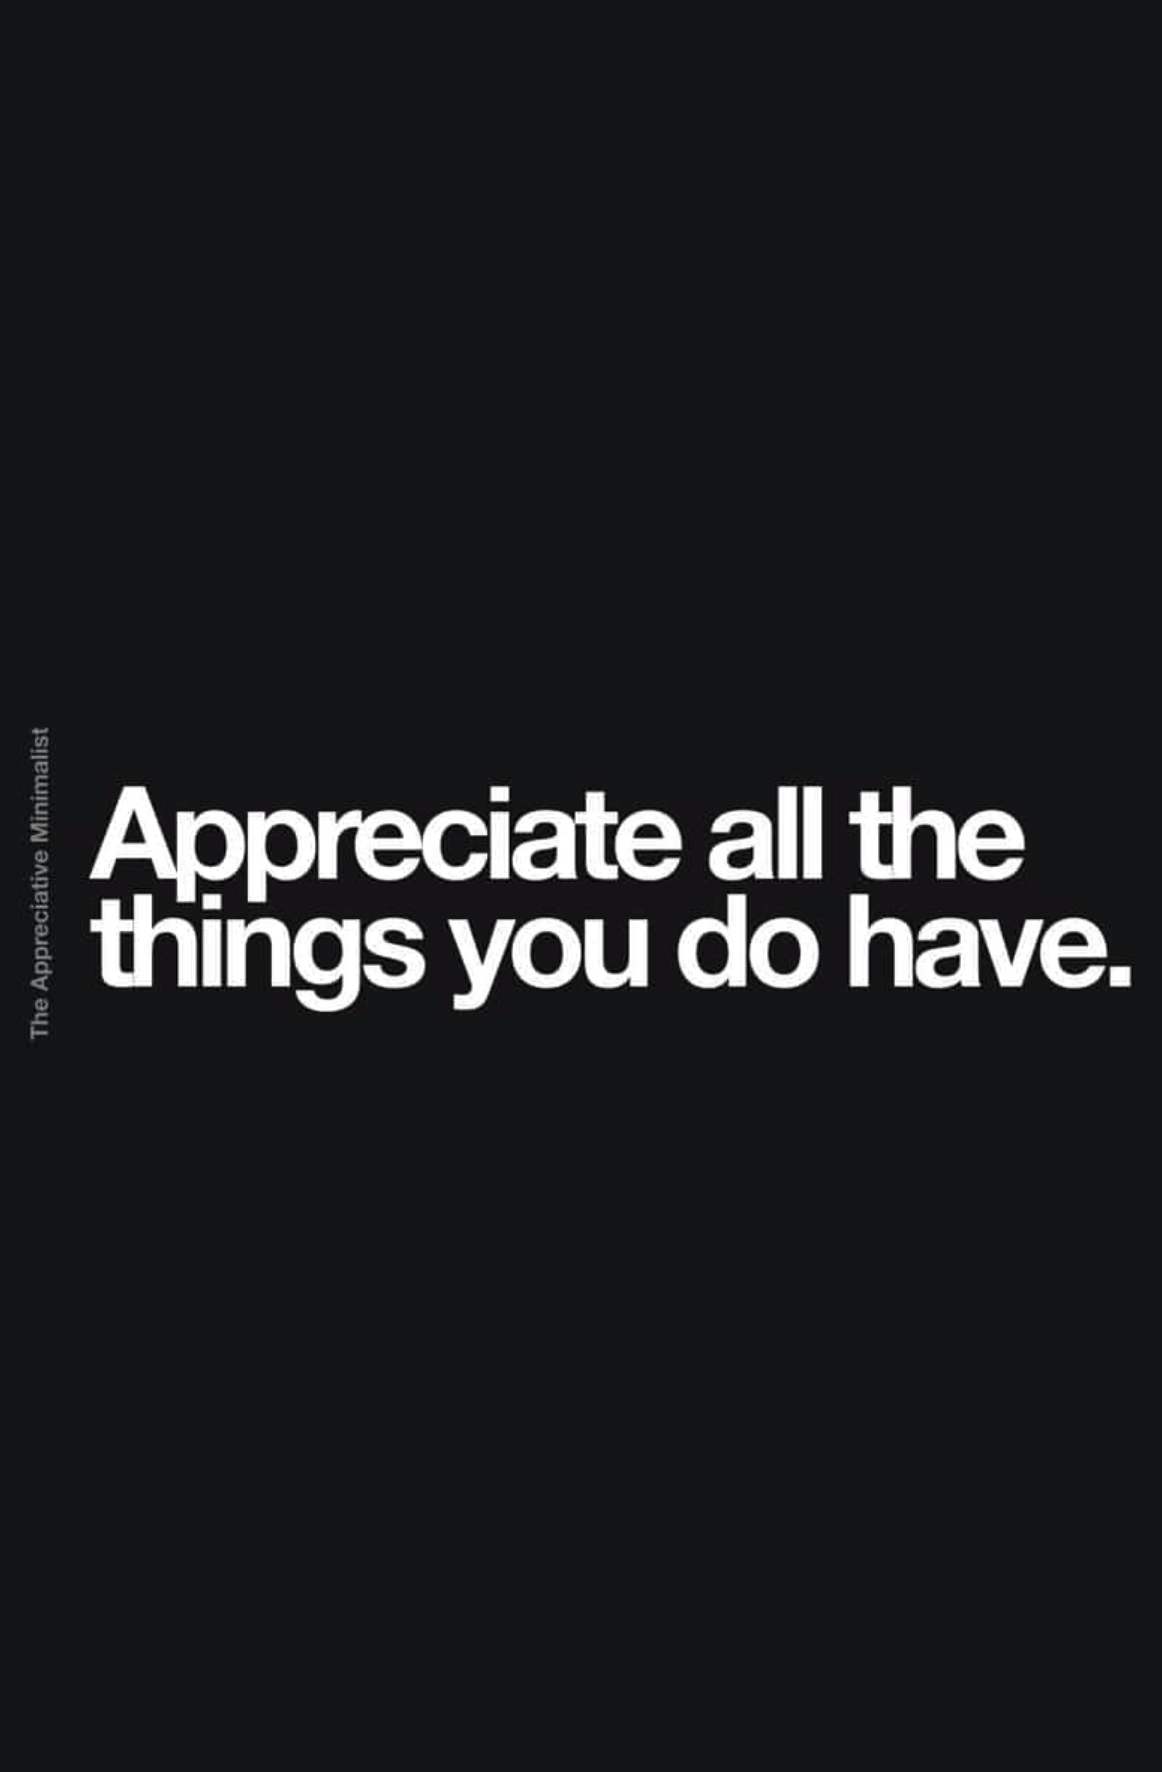 Appreciate all the things you do have